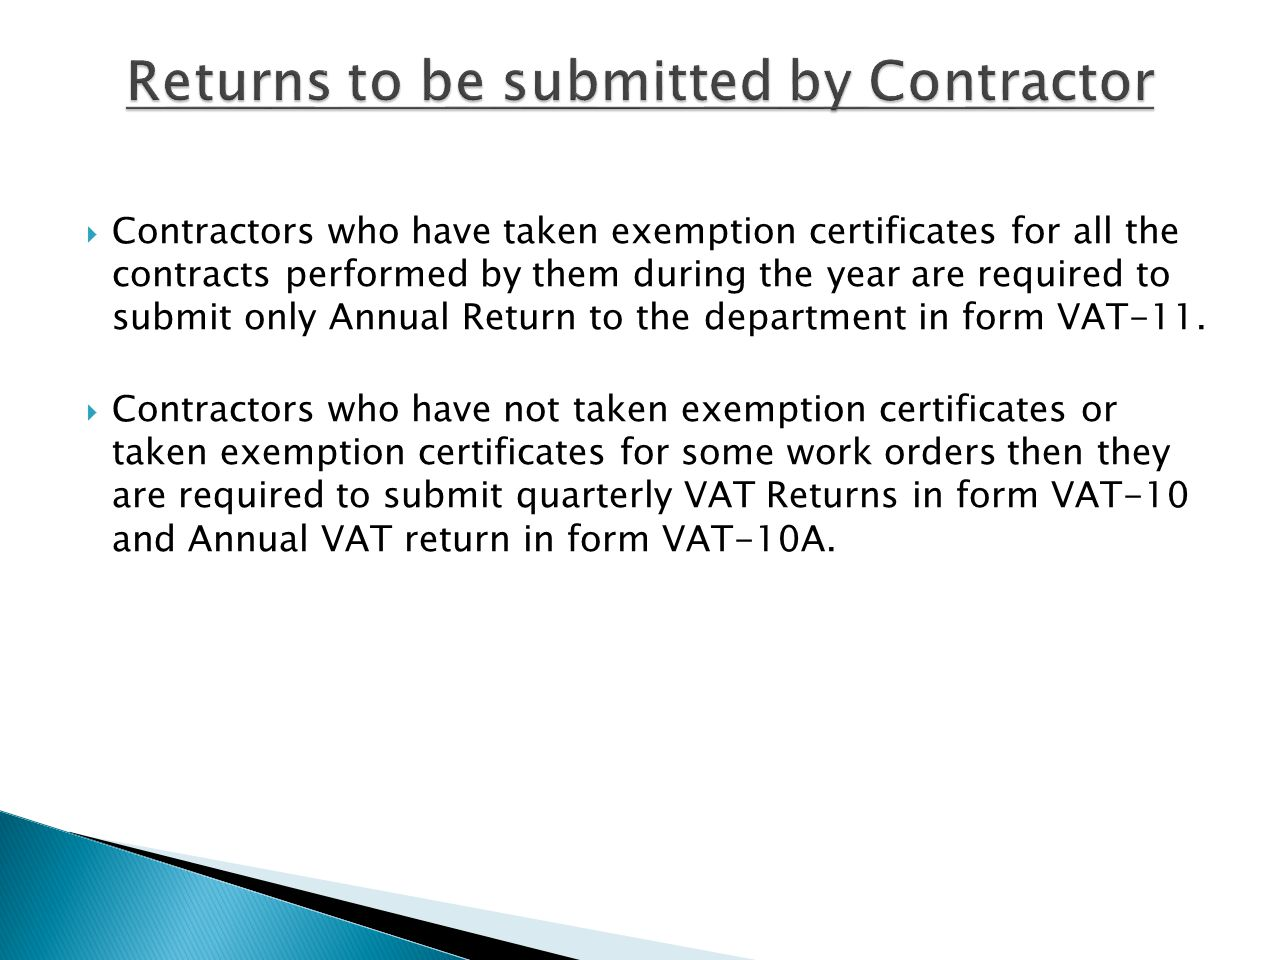 Contractors who have taken exemption certificates for all the contracts performed by them during the year are required to submit only Annual Return to the department in form VAT-11.